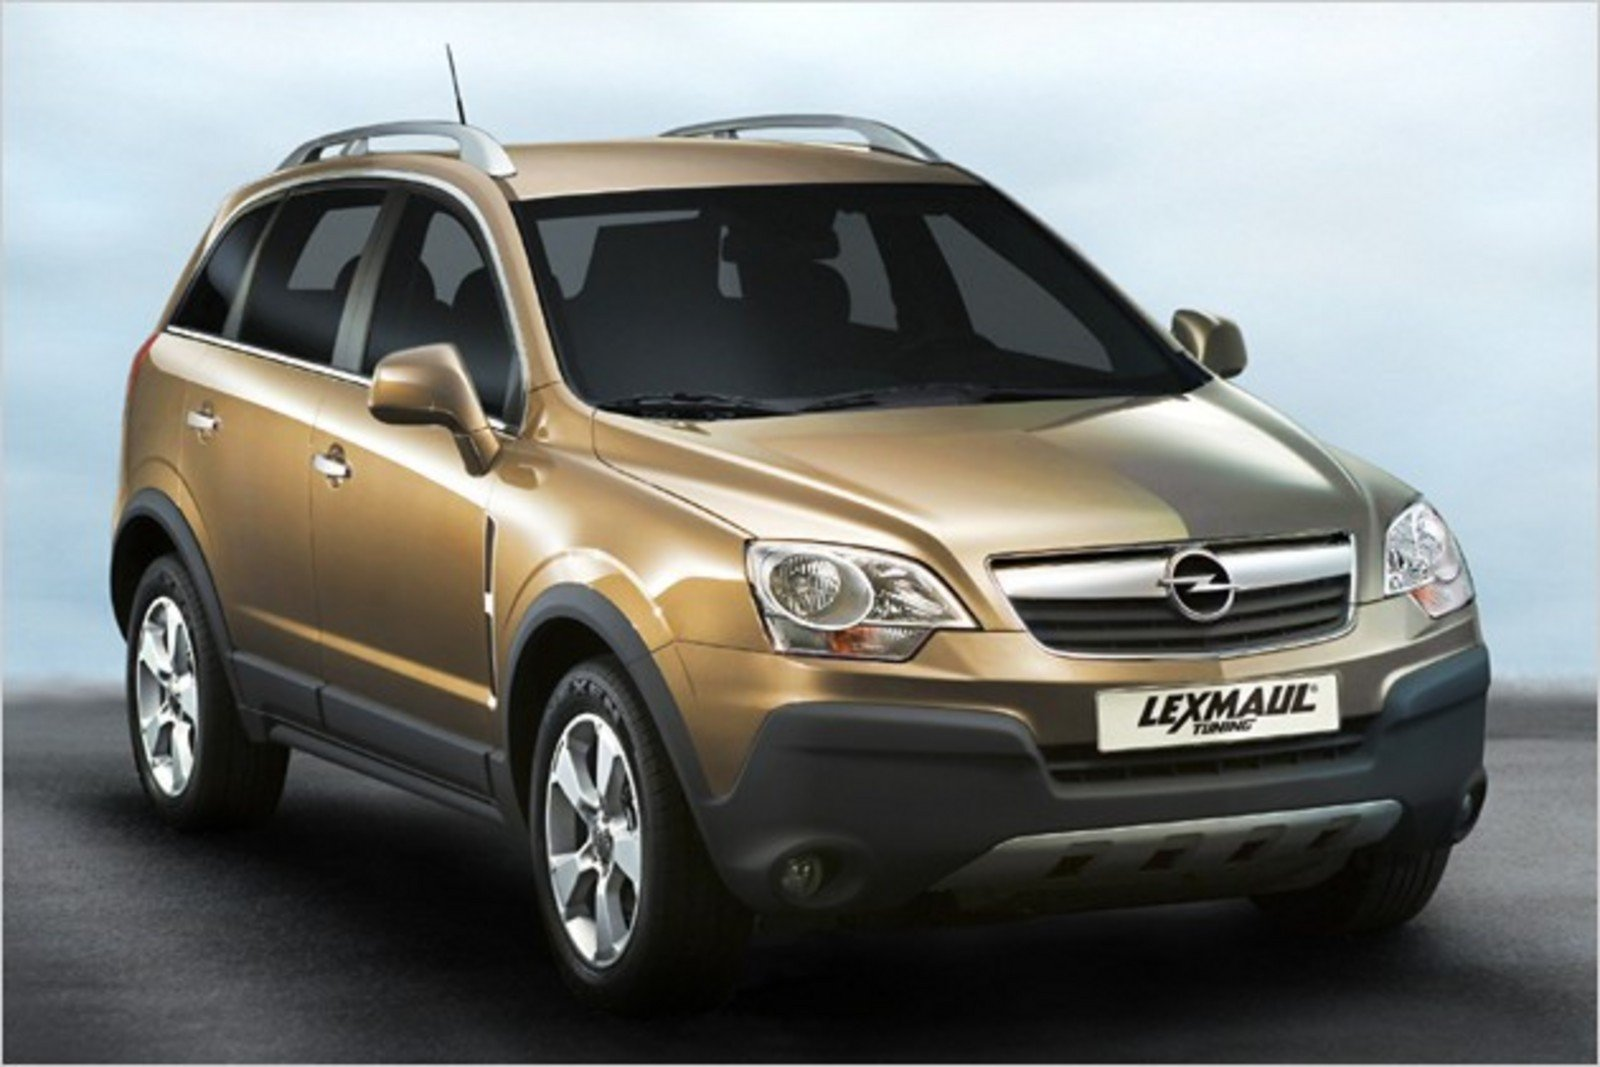 All Chevy chevy captiva gas mileage : Chevrolet Captiva Reviews, Specs & Prices - Top Speed